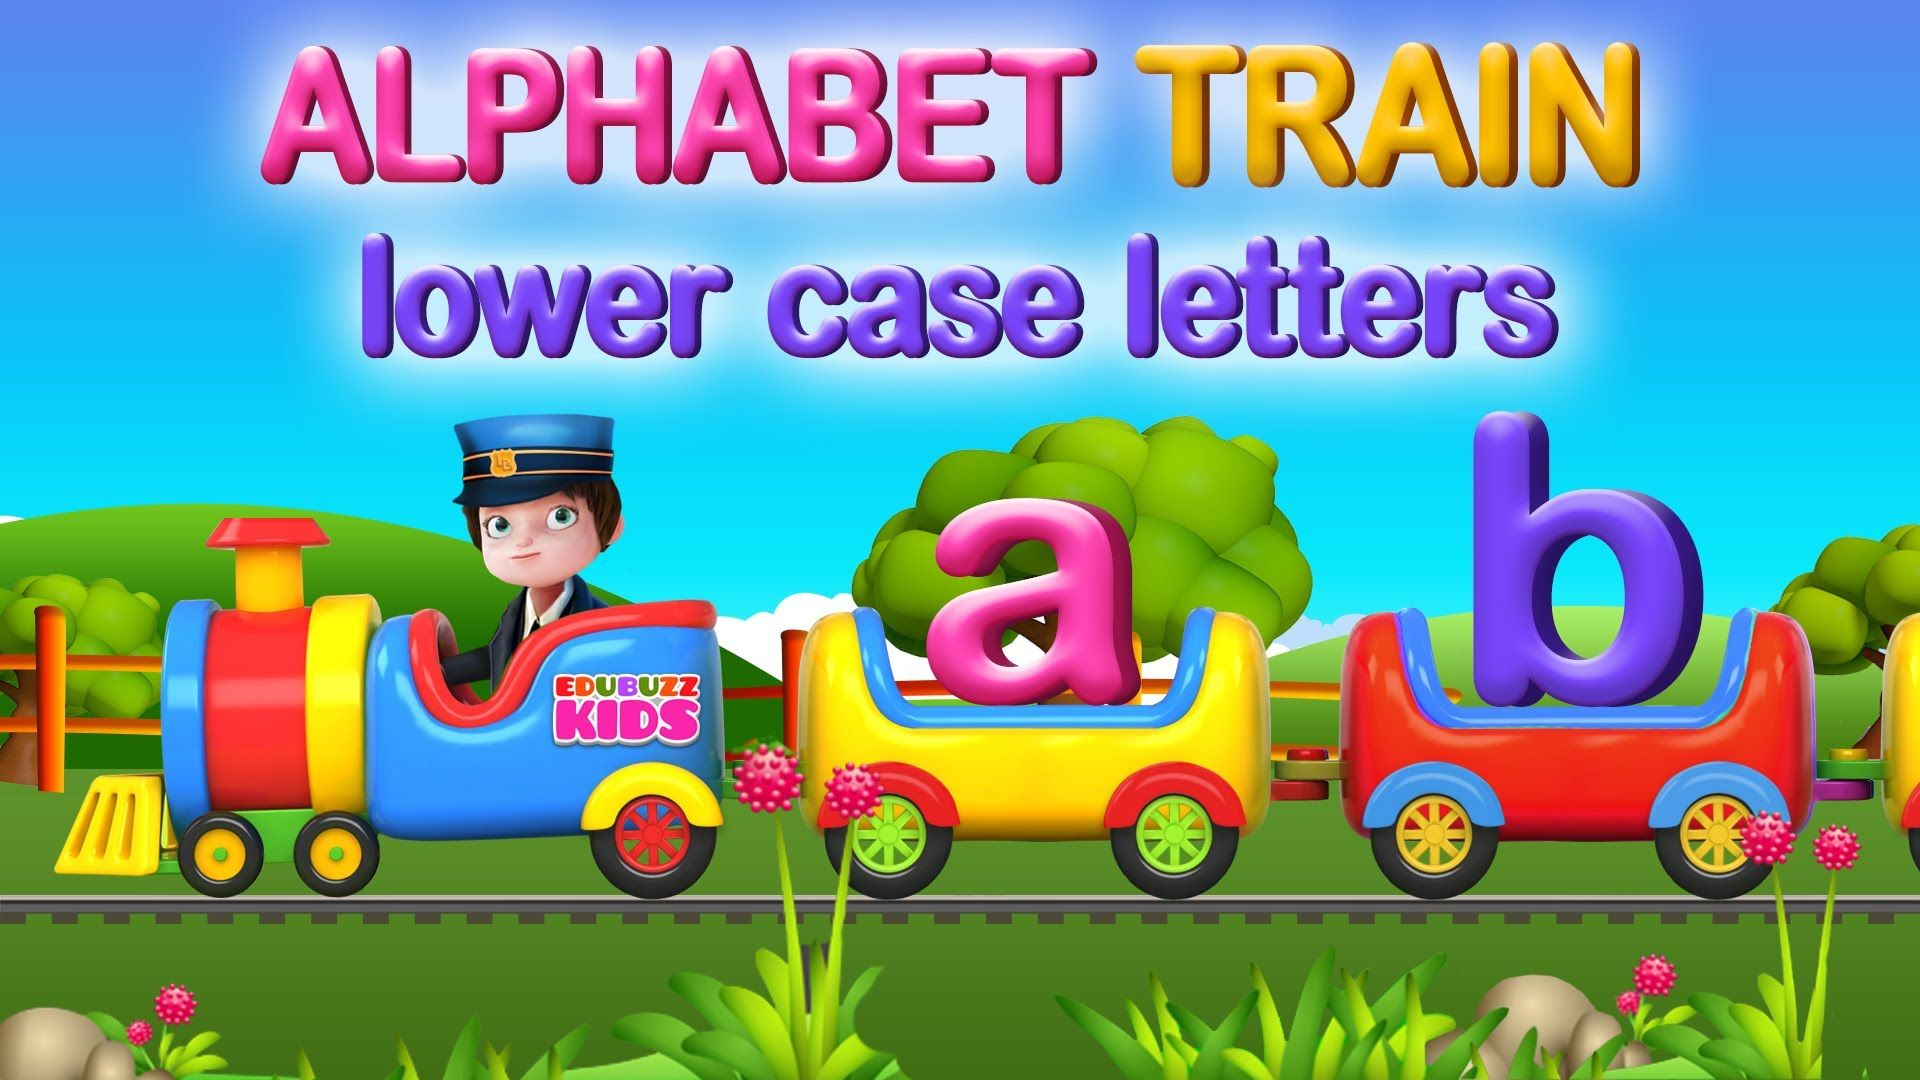 Alphabet train for learning lowercase letters a b c d e f